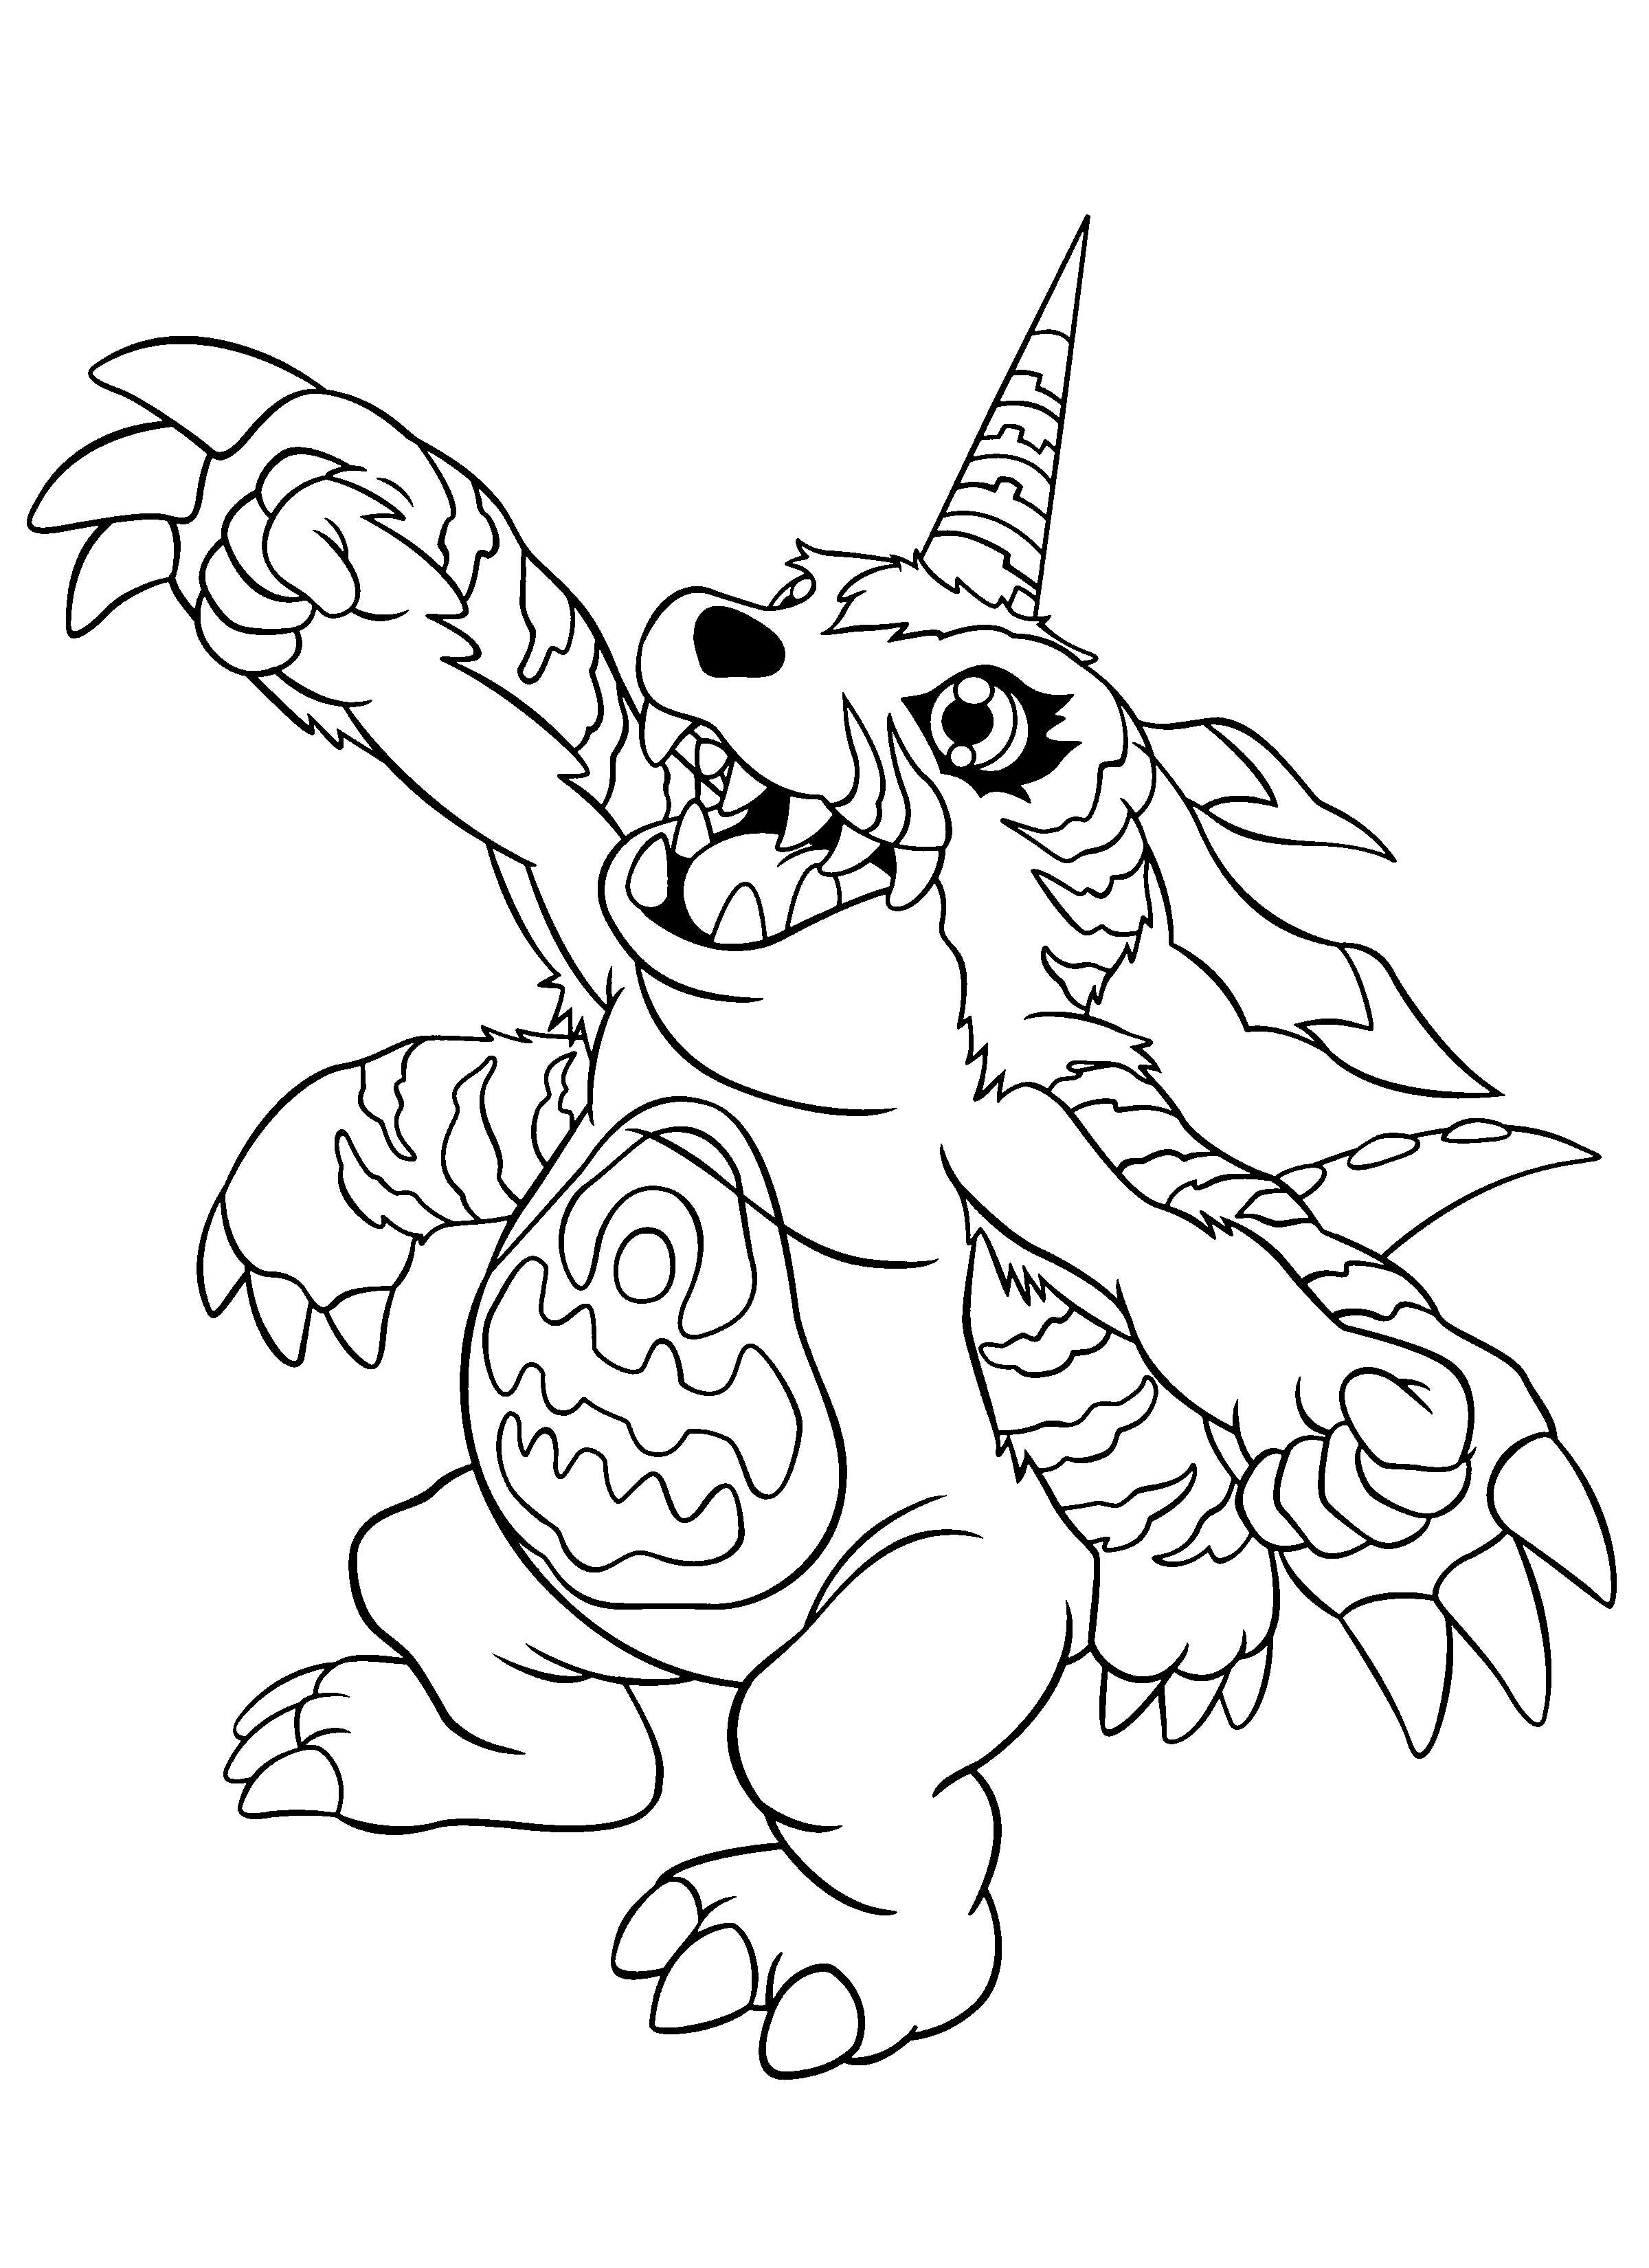 digimon coloring pages printable digimon coloring pages printable pages digimon coloring printable